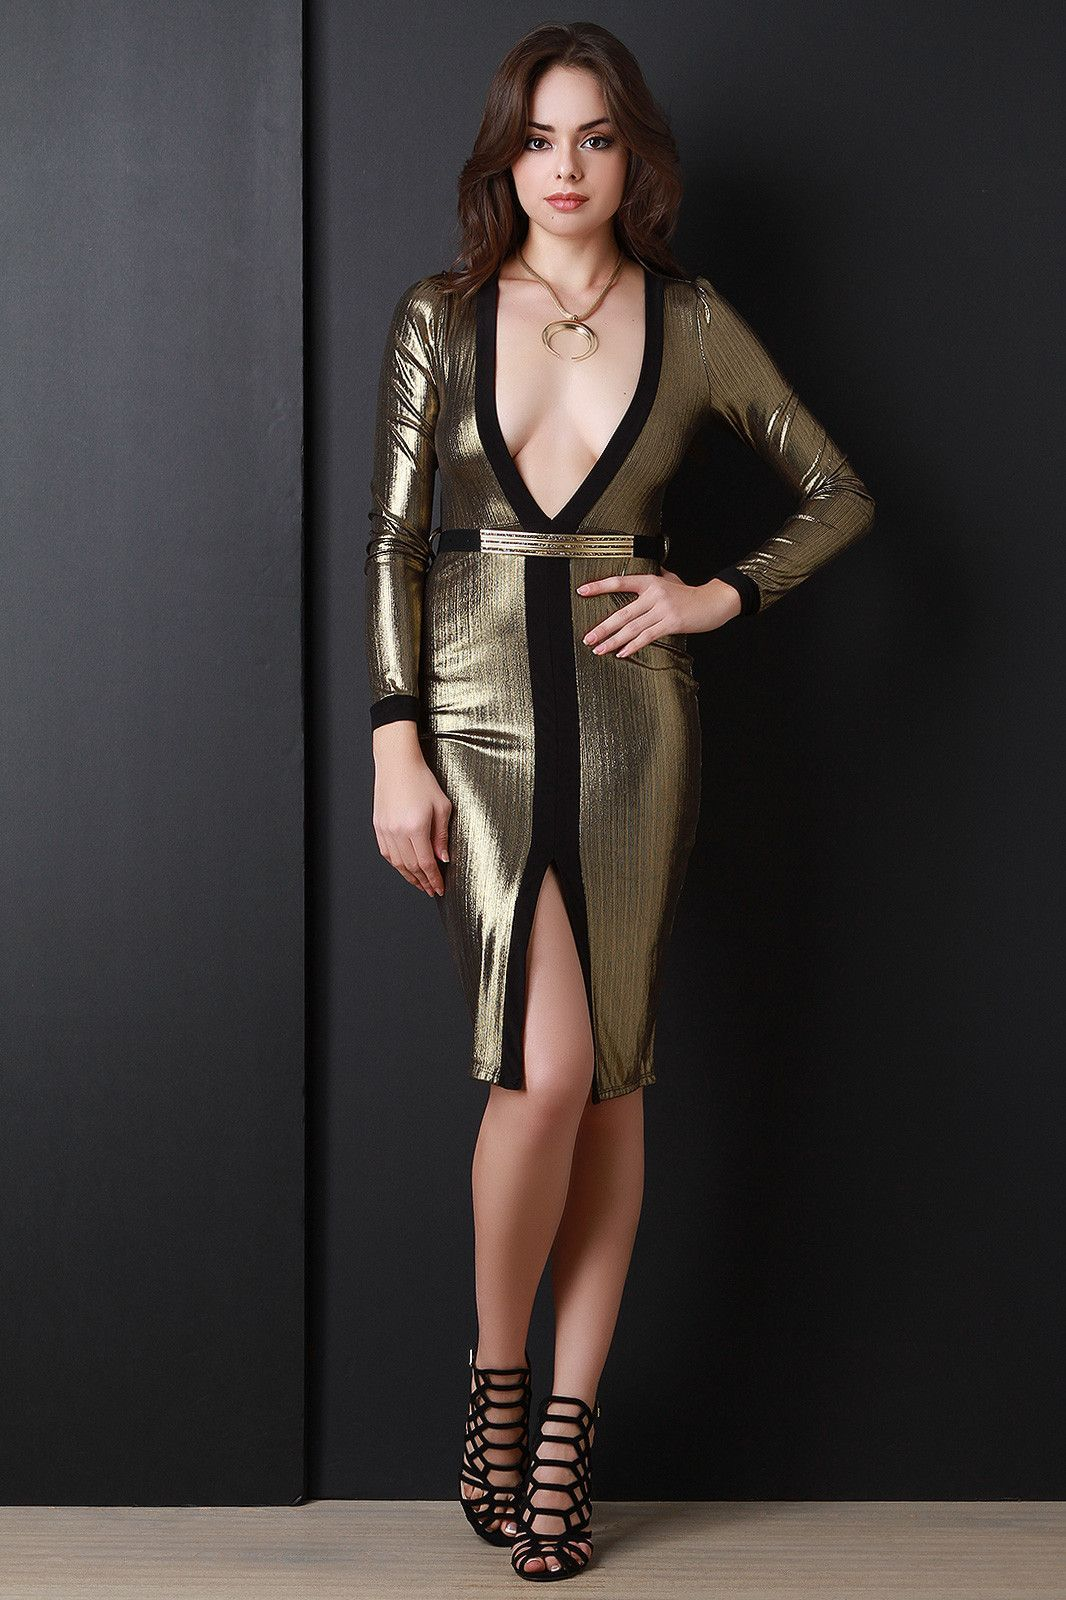 Lace dress styles for funeral  Deep V Diva Long Sleeve Metallic Dress  Products